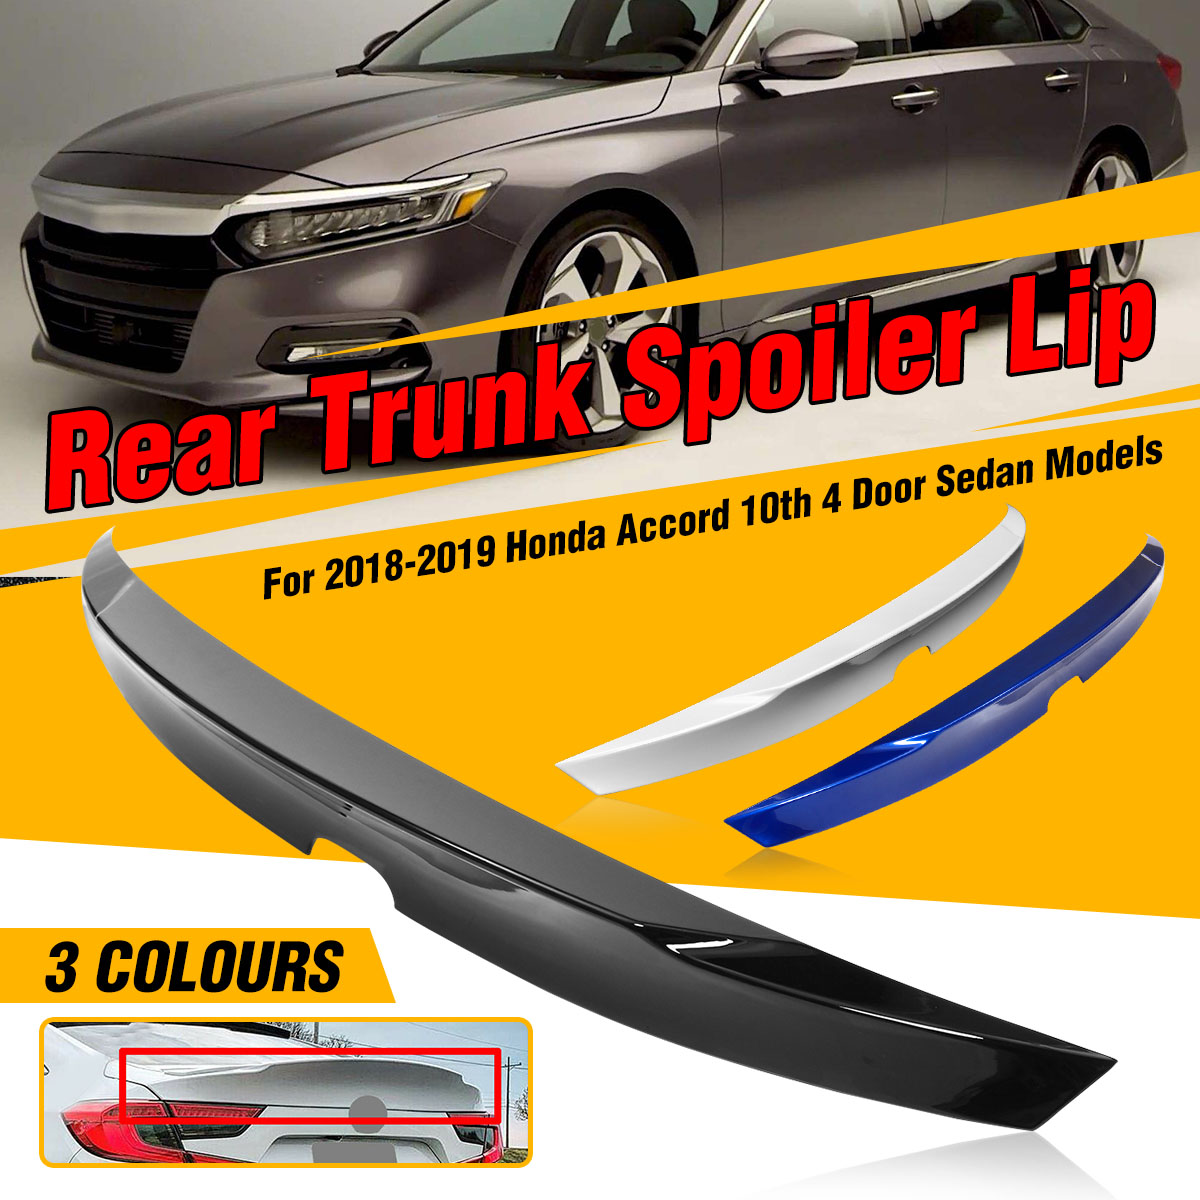 UNPAINTED REAR WING FACTORY STYLE SPOILER FOR A HONDA ACCORD 2-DOOR 2013-2017